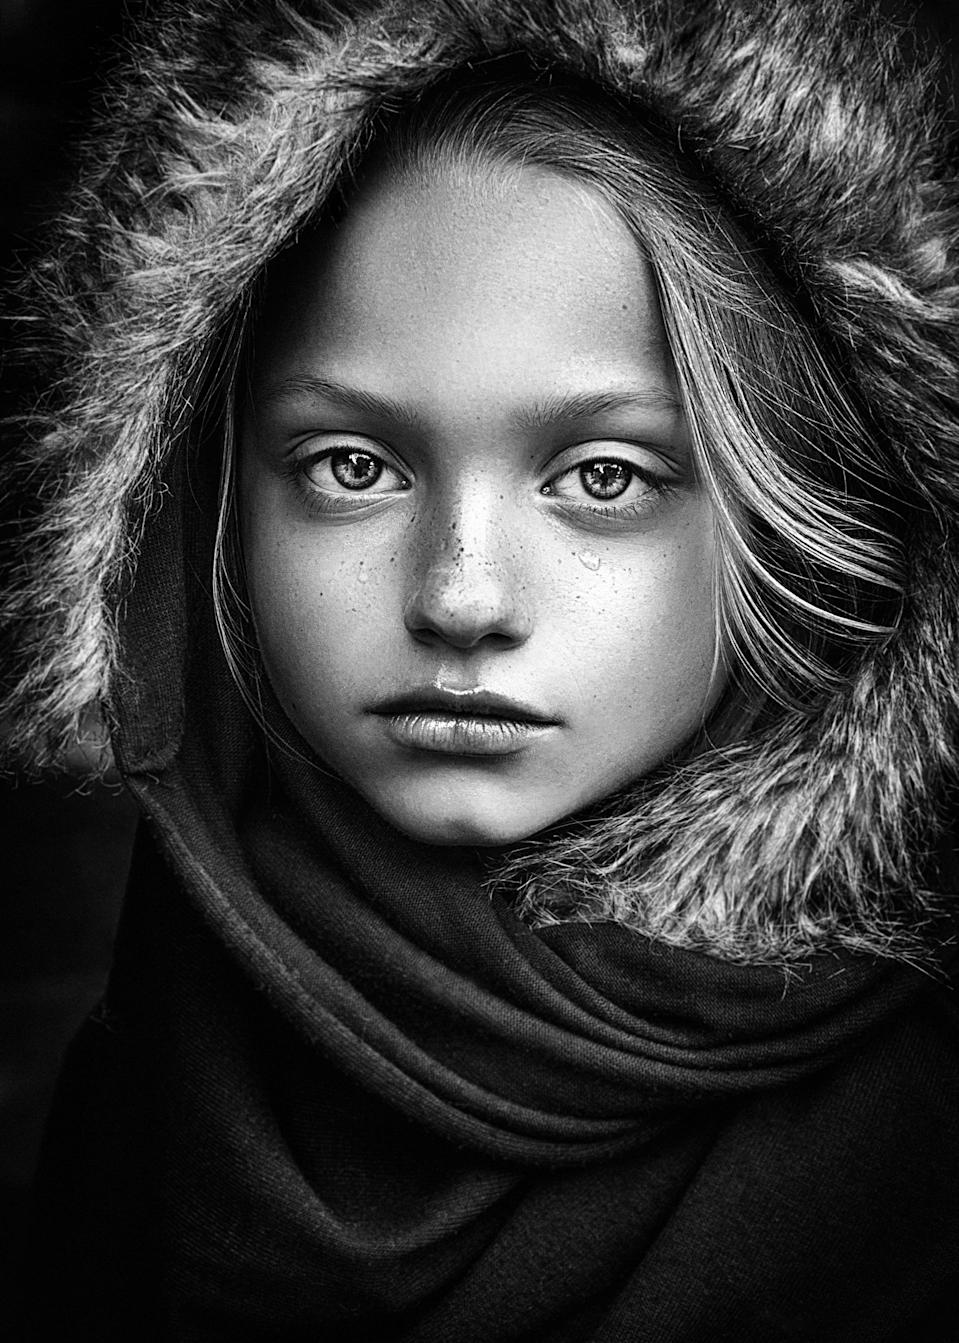 "<p>Portrait of girl in natural light – This highly commended portrait of a young girl came about during a model shoot by Danish photographer Janie Cristina Salskov. The 40-year-old said: ""The portrait is was an improvised art capture during a portfolio winter session outside in natural light."" Source: Janie Cristina Salskov / SWNS </p>"